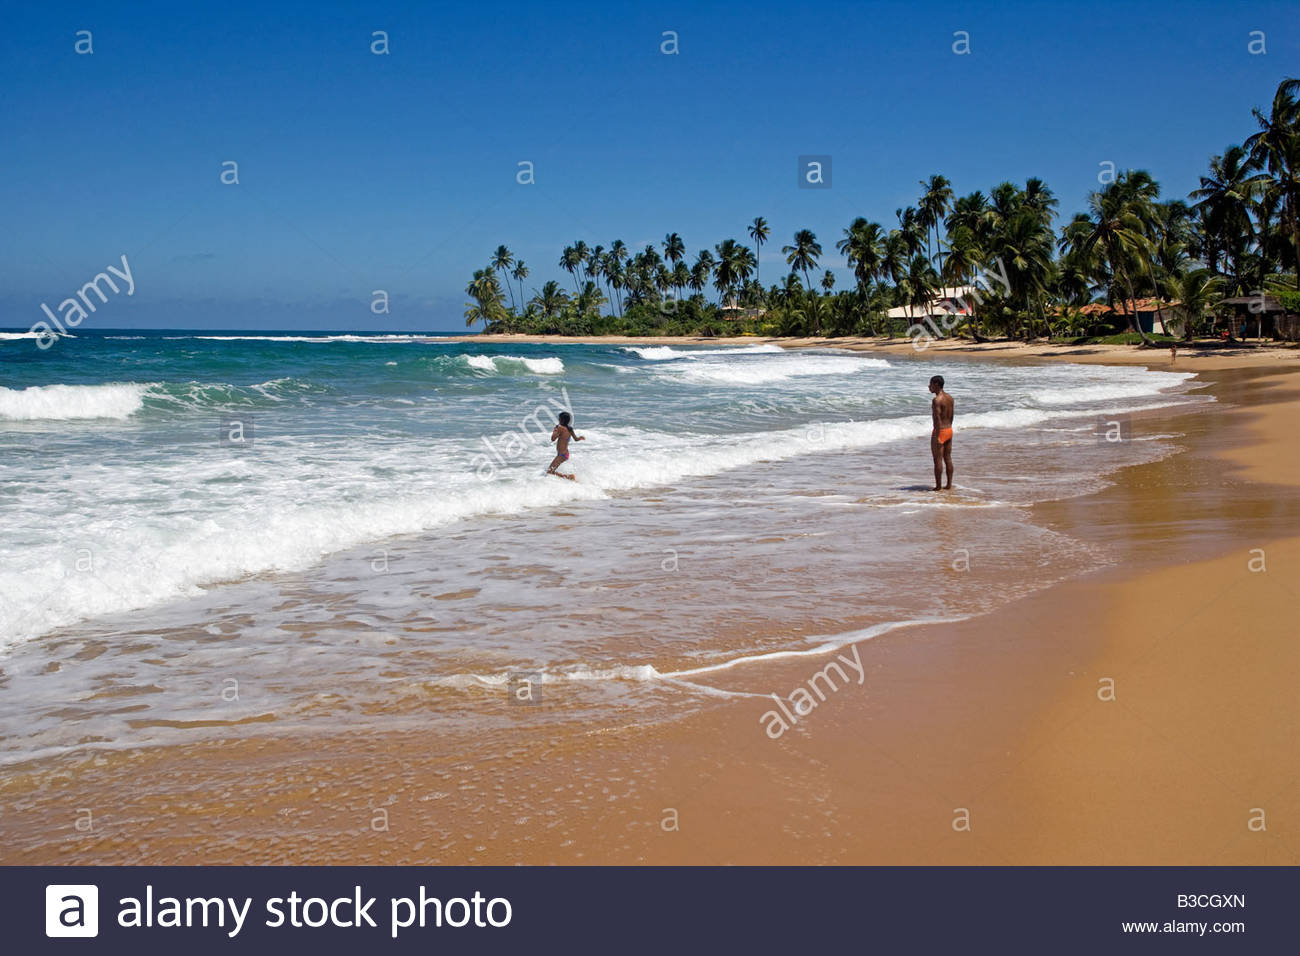 brazil bahia barra grande the empty beaches pristine sand and warm B3CGXN